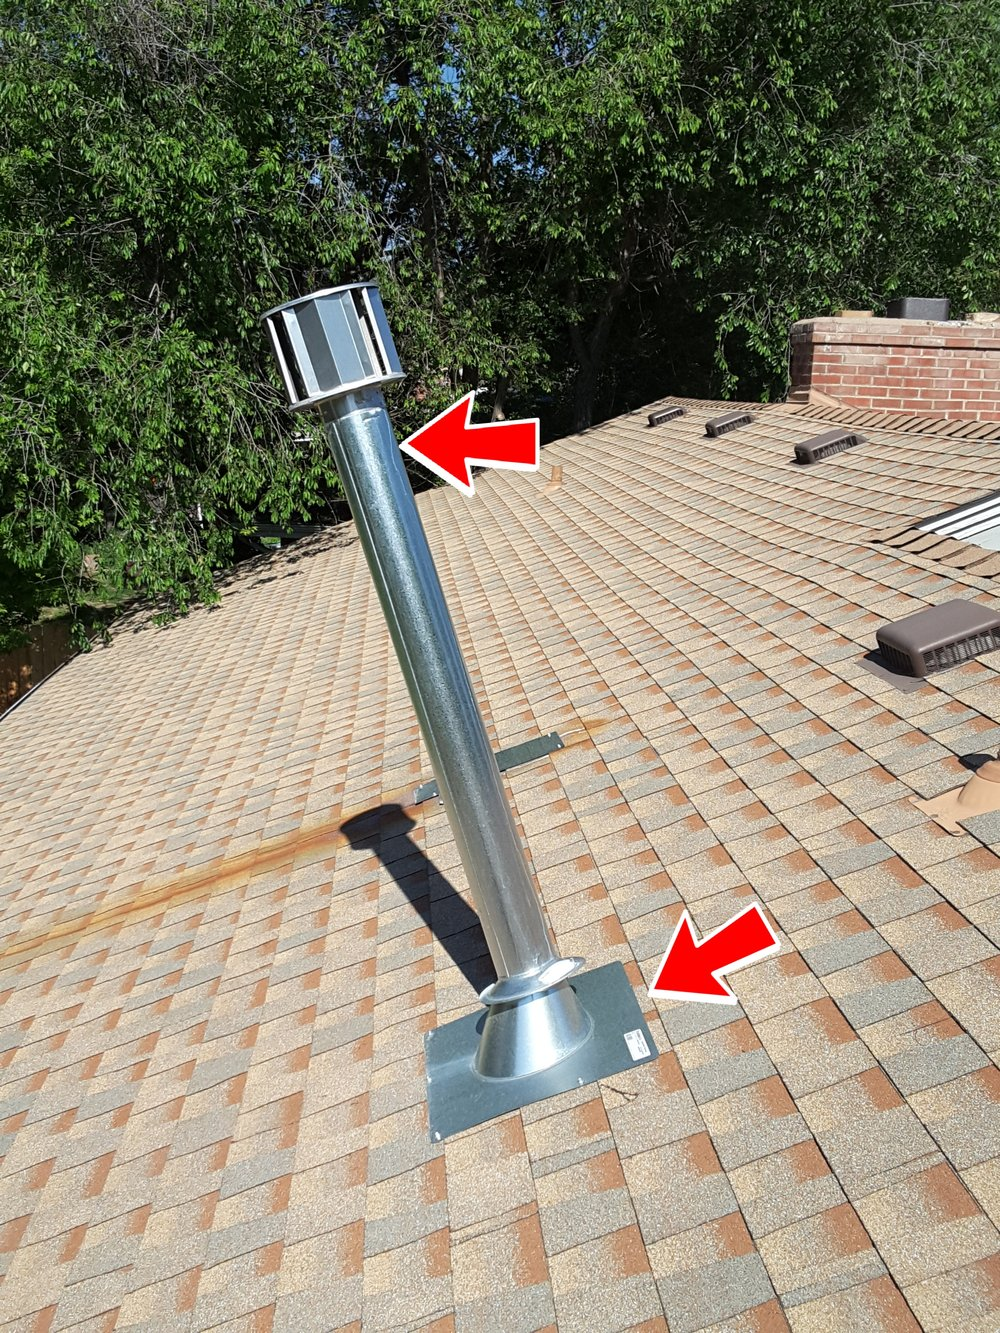 Unfortunately, missing, improper and poorly installed roof flashing is not uncommon.